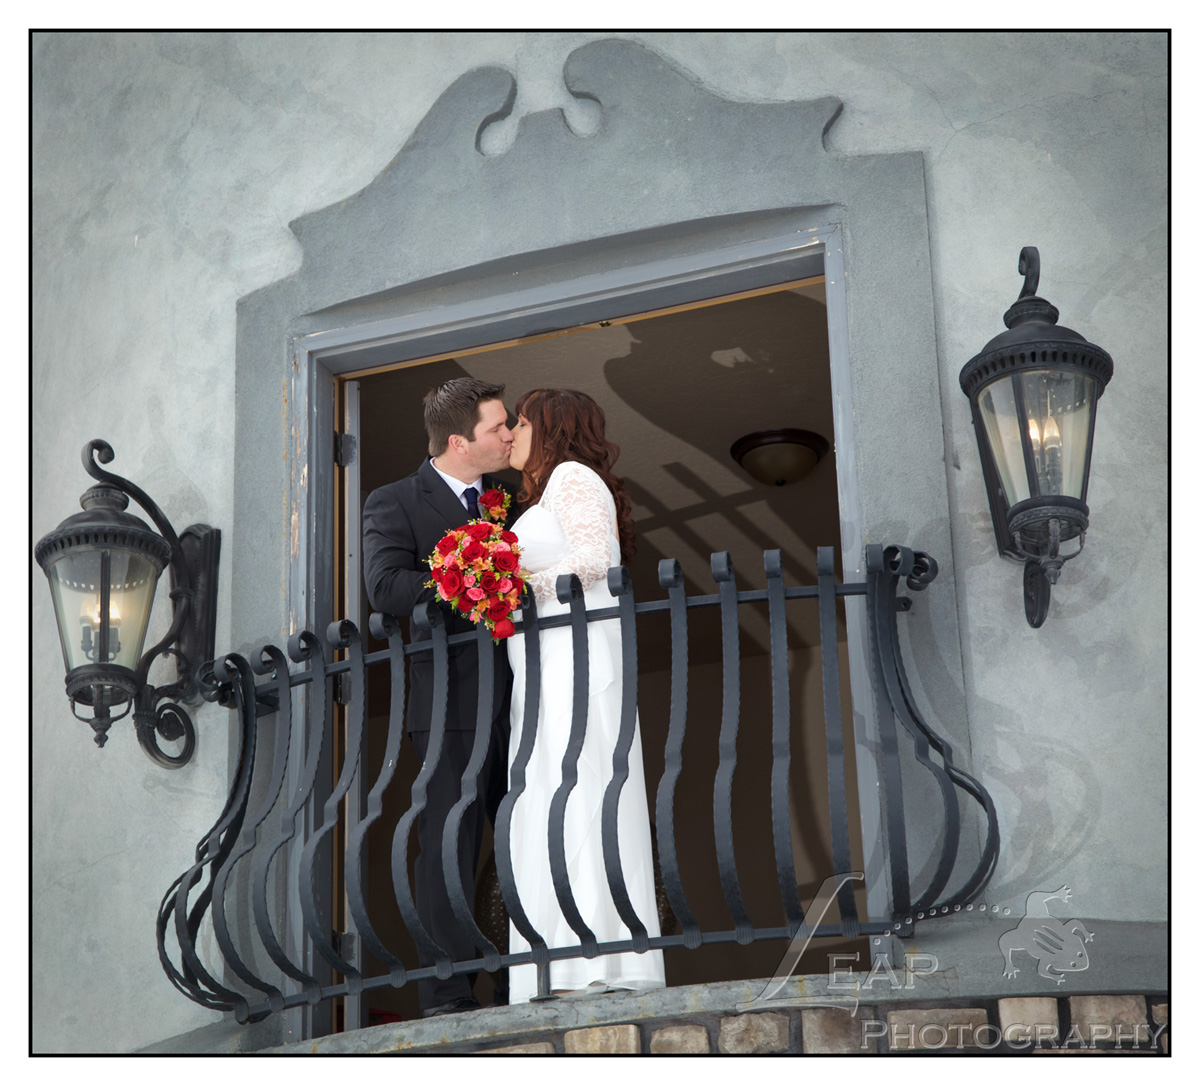 couple kissing in front of castle doors on their wedding day